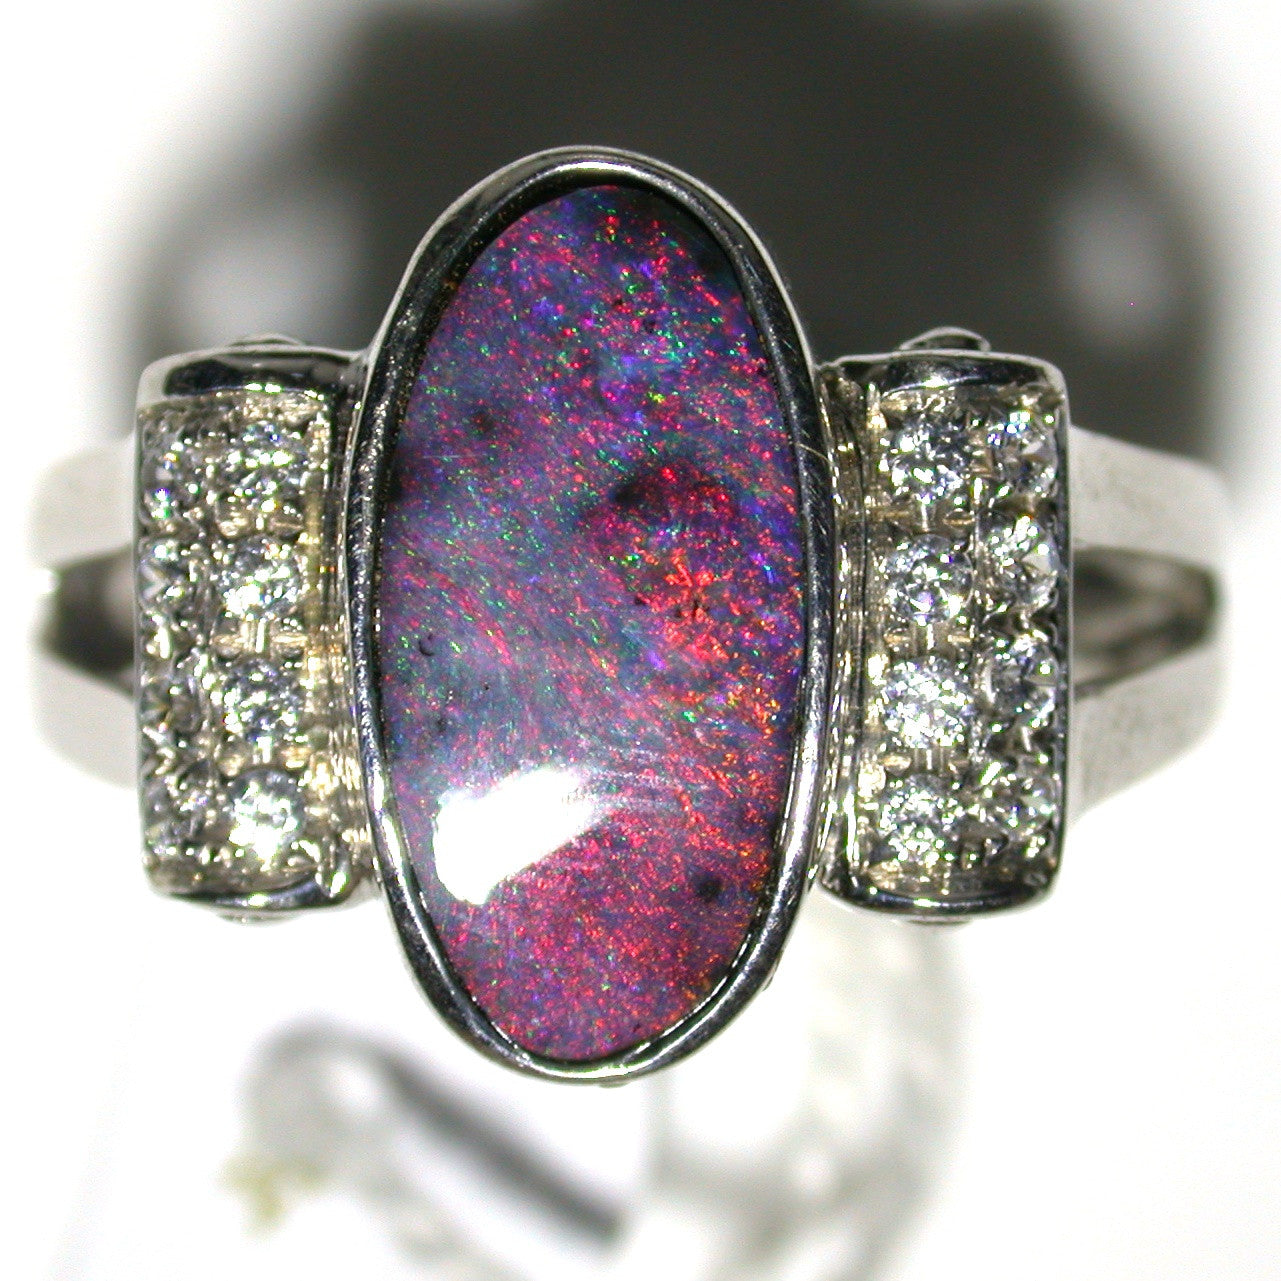 Hot Pink and Red solid  boulder opal from Quilpie